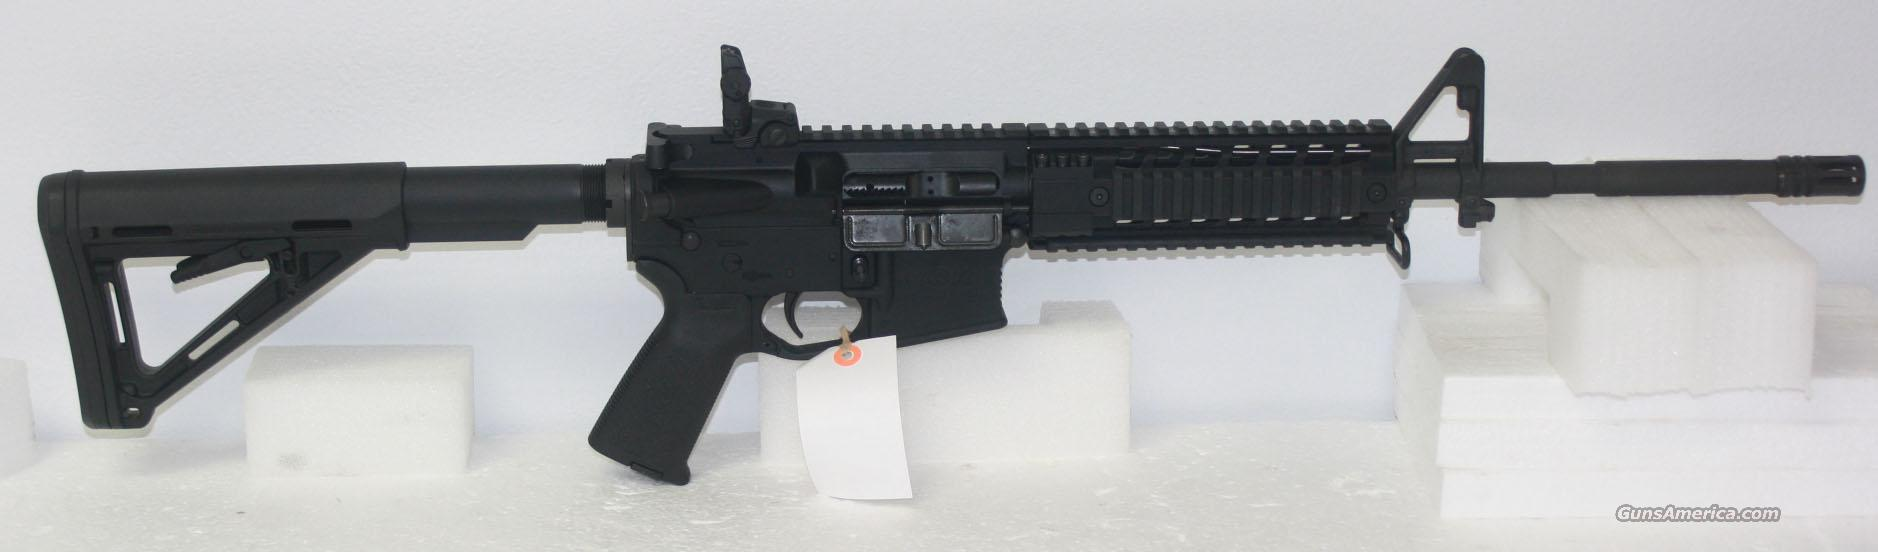 "CORE 15 6408 ""TAC"" M4  16"" 5.56MM NATO NEW IN BOX  Guns > Rifles > AR-15 Rifles - Small Manufacturers > Complete Rifle"